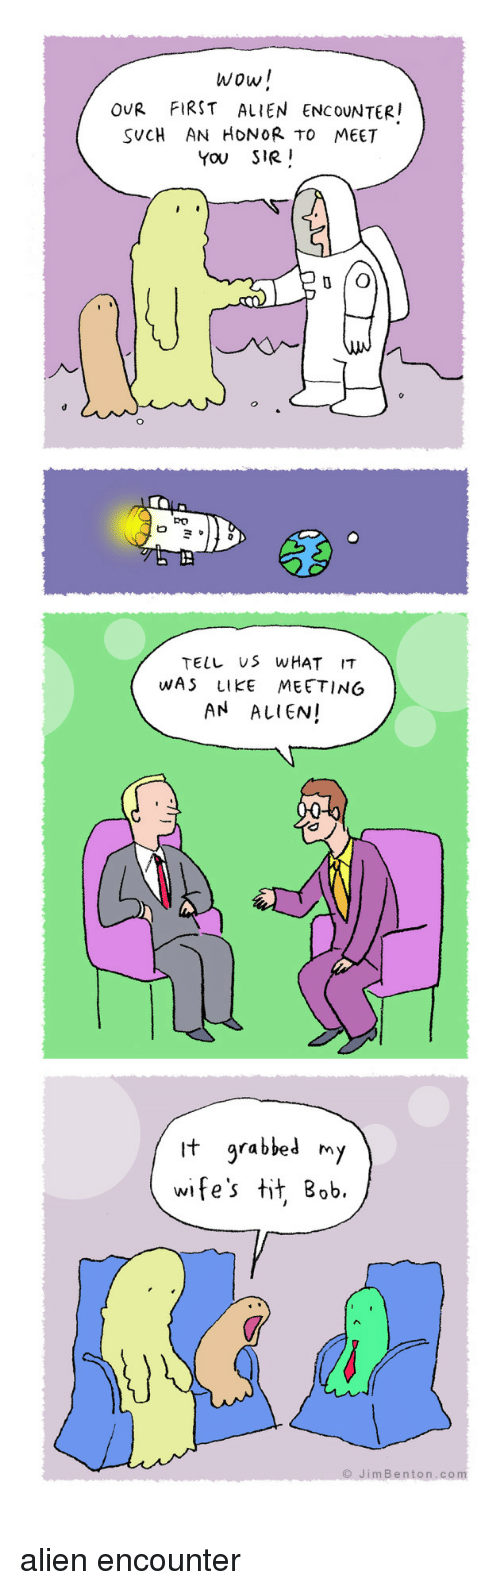 Wow, Alien, and Com: wow!  OUR FIRST ALIEN ENCOUNTER  SUCH AN HONOR TO MEET  You SIR  Ro  TELL US WHAT IT  WAS LIKE MEETING  AN ALIEN!  t arabbed m  wife's tit, Bob.  JimBenton.com alien encounter